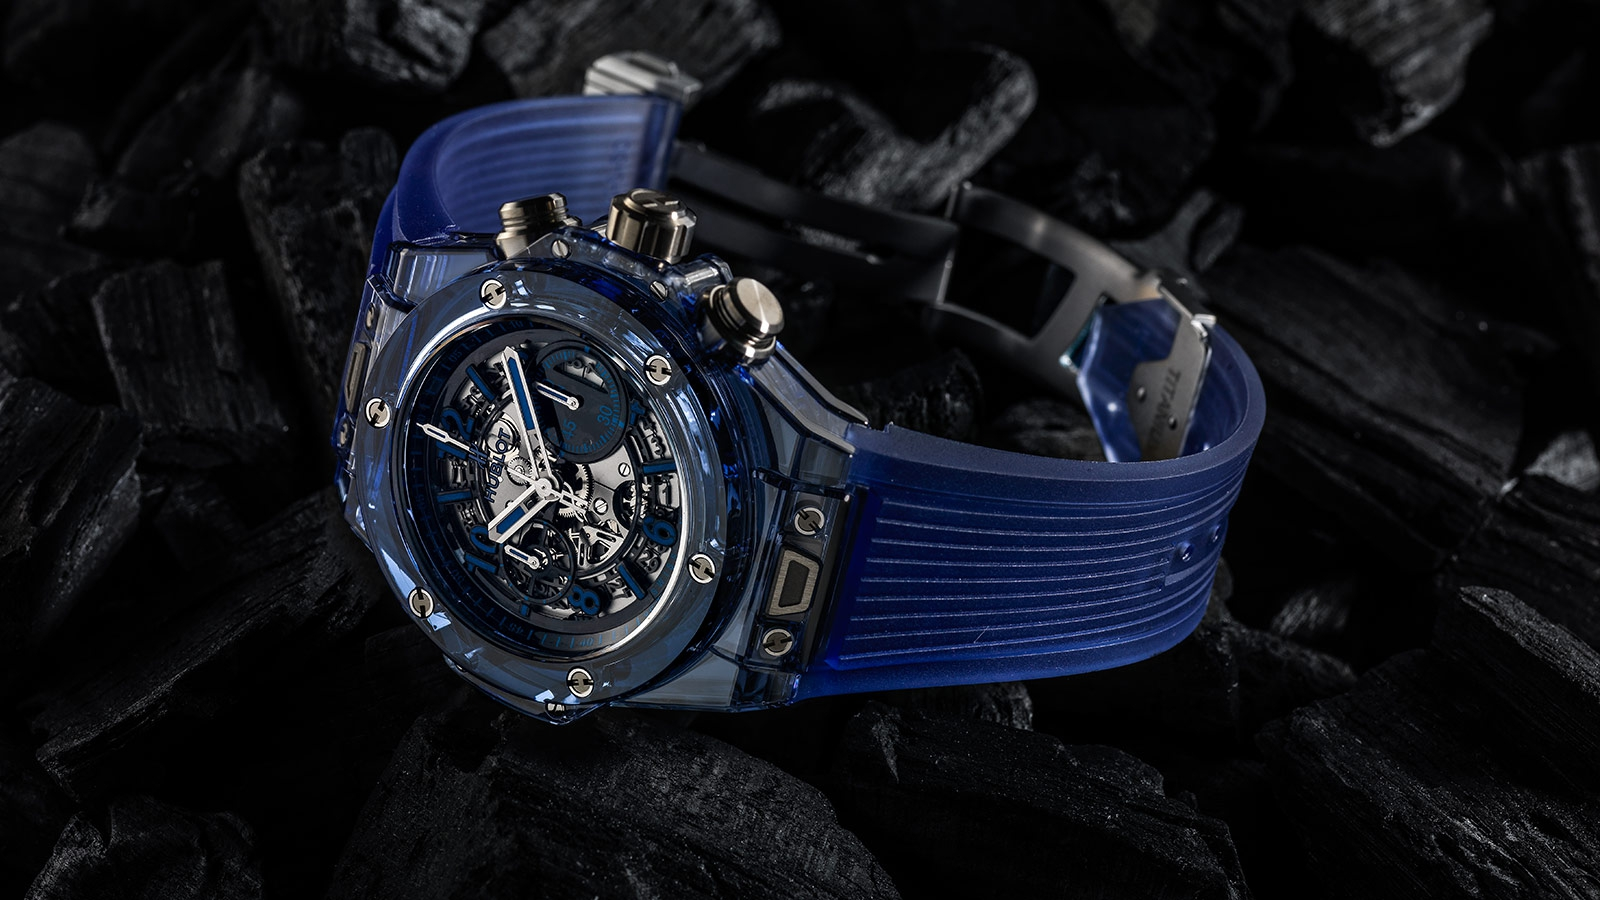 Uhr Hublot The Key Of Time Replica Hublot Watches Beste Breitling Replika